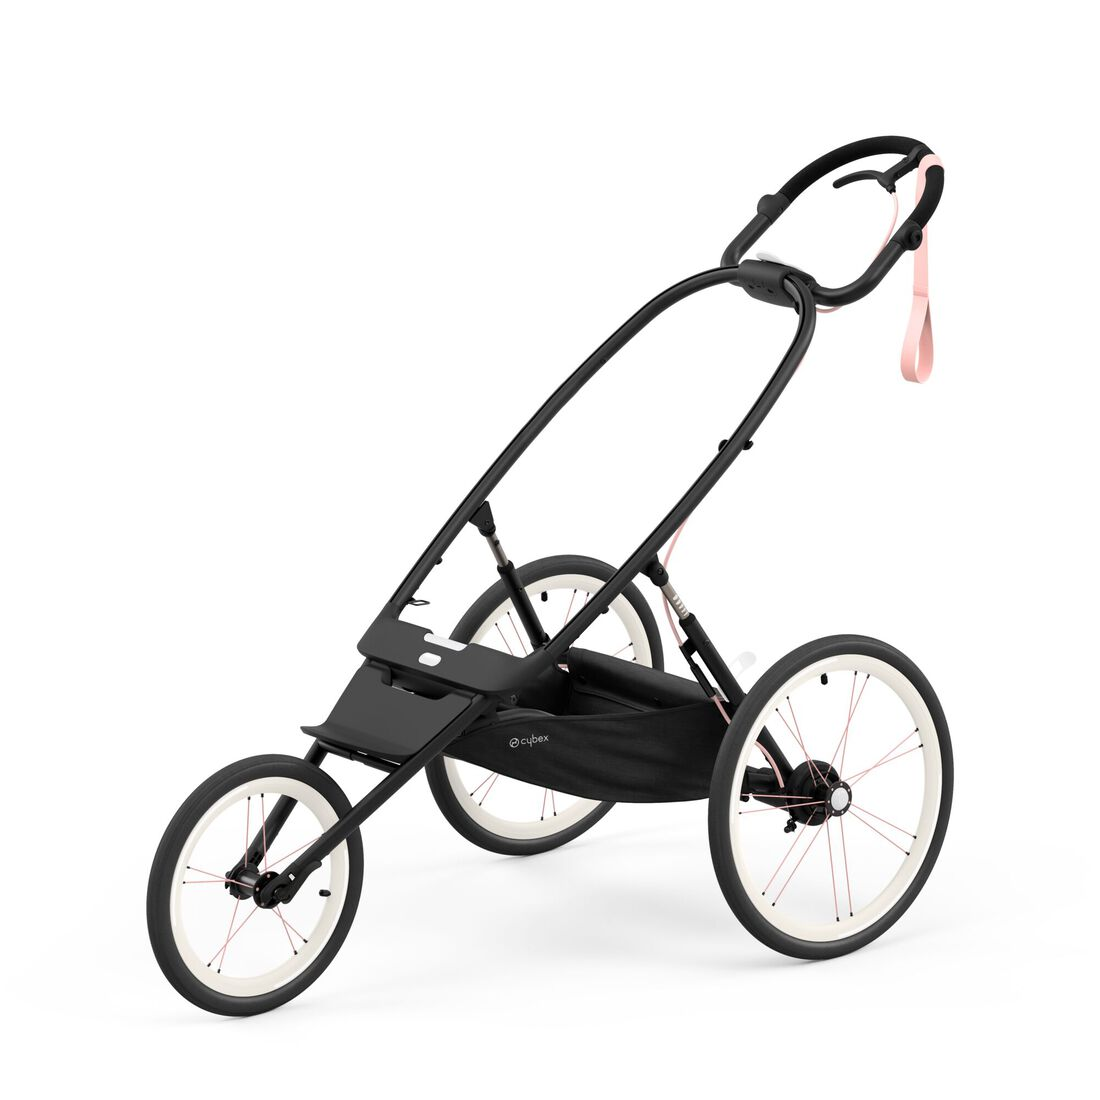 CYBEX Avi Frame - Black With Pink Details in Black With Pink Details large image number 1